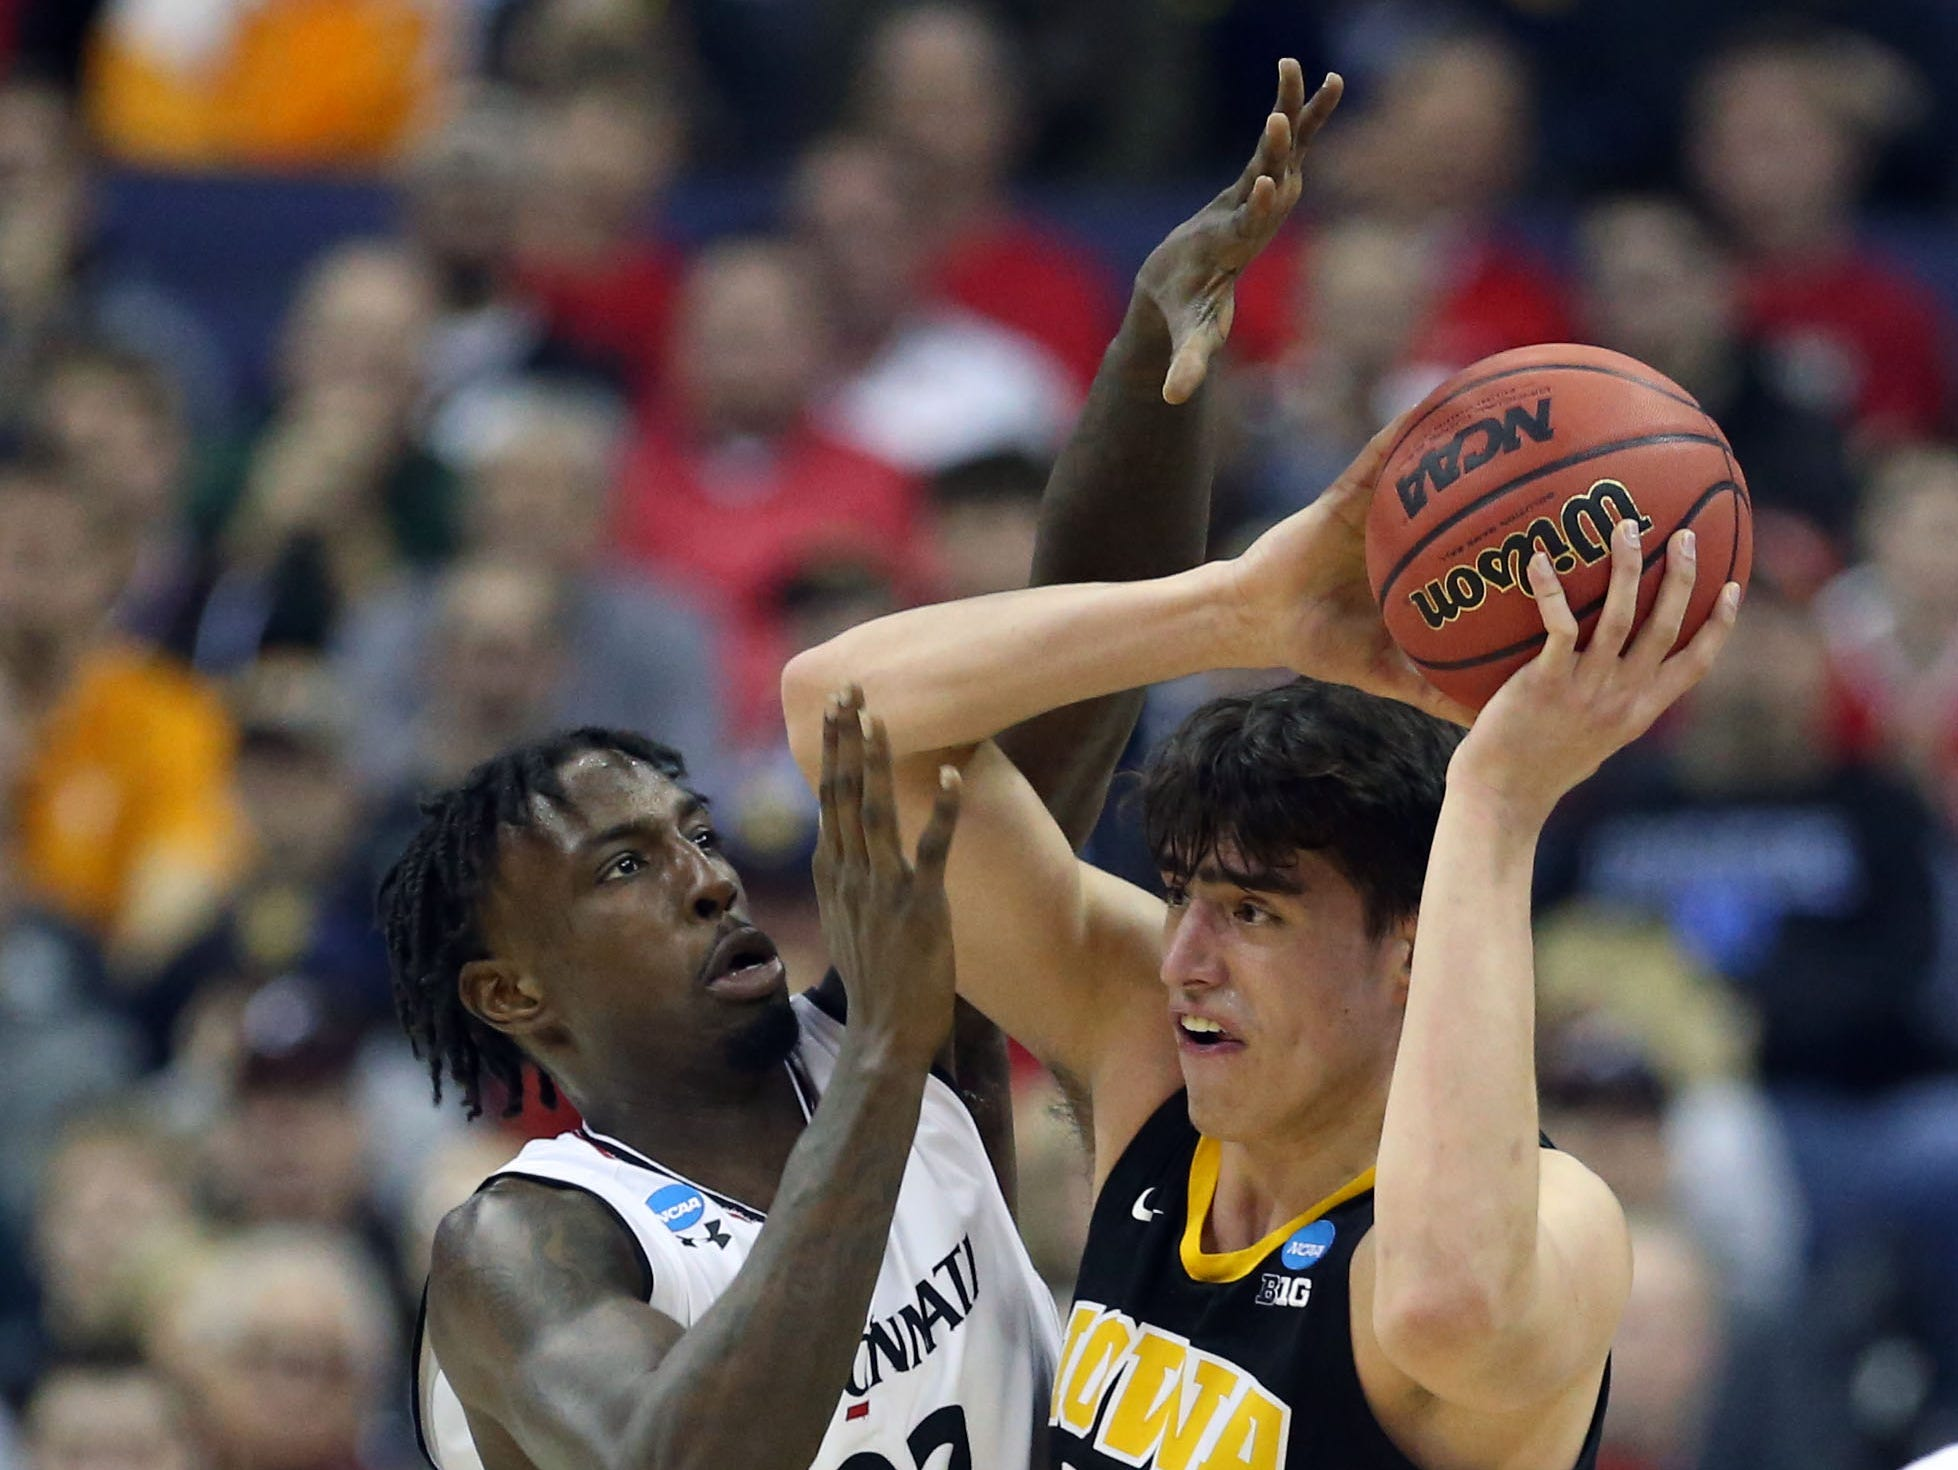 Mar 22, 2019; Columbus, OH, USA; Iowa Hawkeyes forward Luka Garza (55) fight to keep control of the ball defended by Cincinnati Bearcats center Nysier Brooks (33) in the first half in the first round of the 2019 NCAA Tournament at Nationwide Arena. Mandatory Credit: Kevin Jairaj-USA TODAY Sports